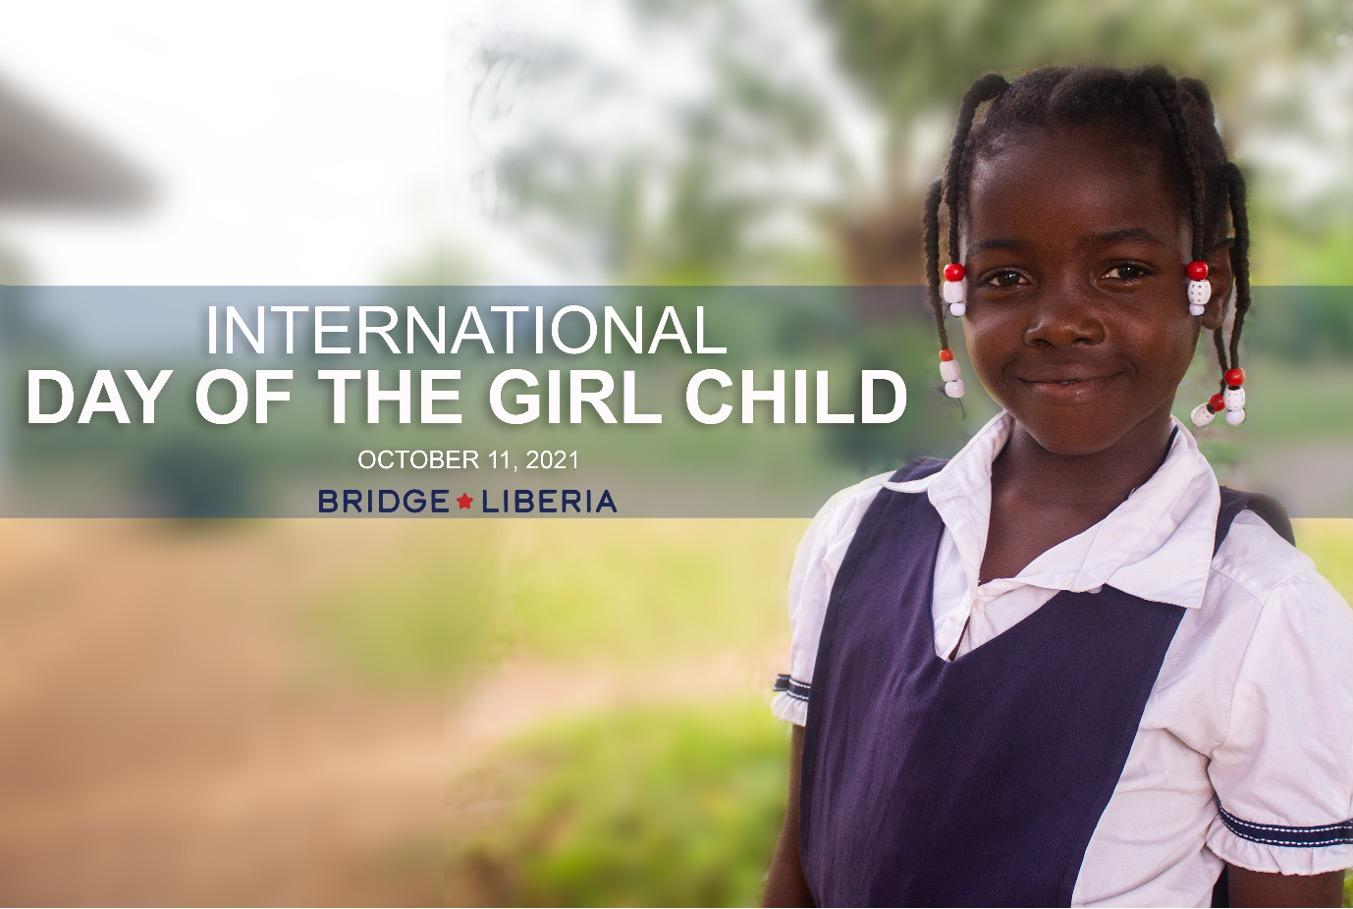 Girls are the future, let's educate them well – A call on International Day of the Girl Child